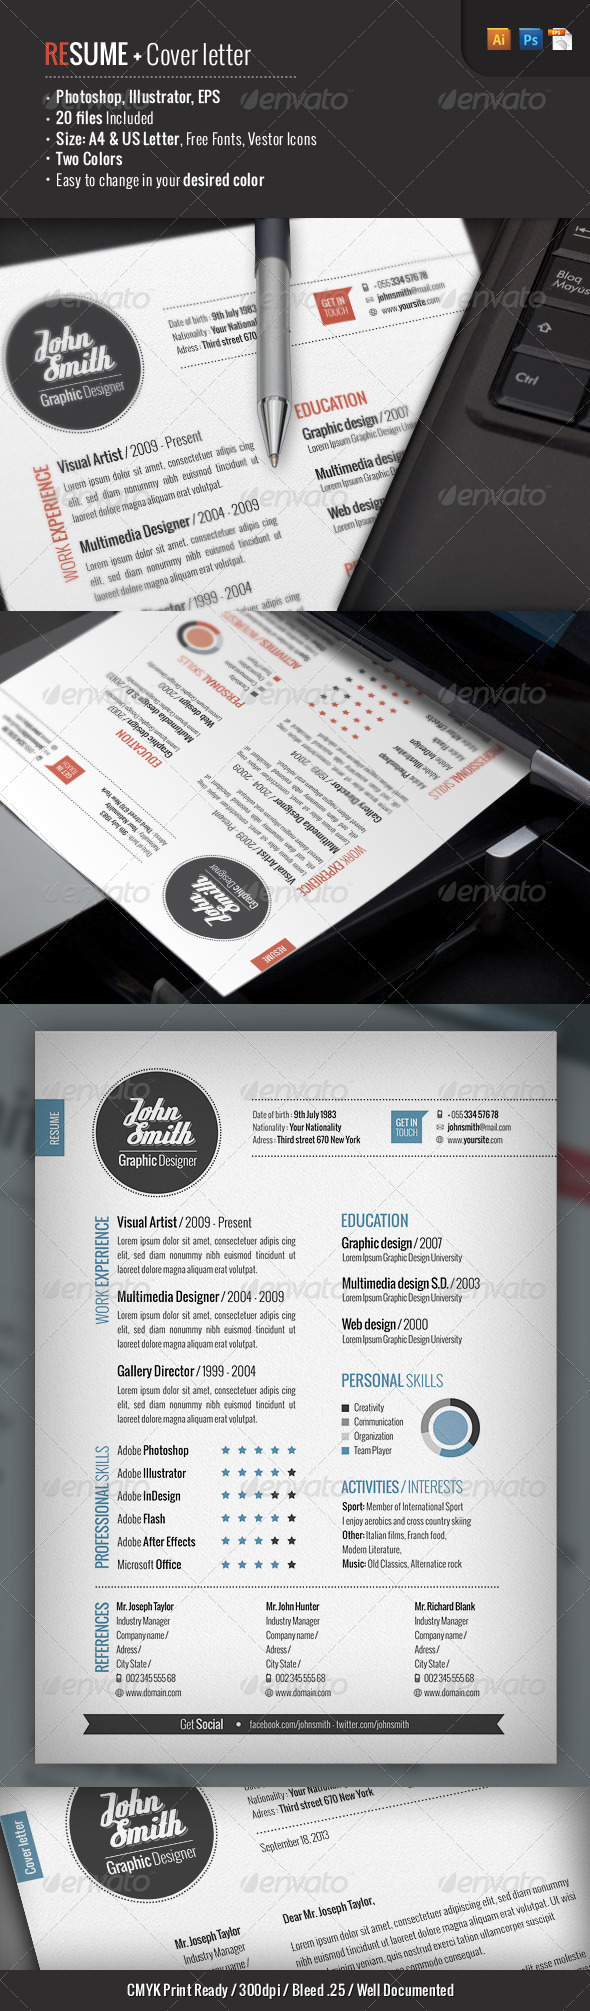 GraphicRiver 2 Piece Resume & Cover Letter 3759802